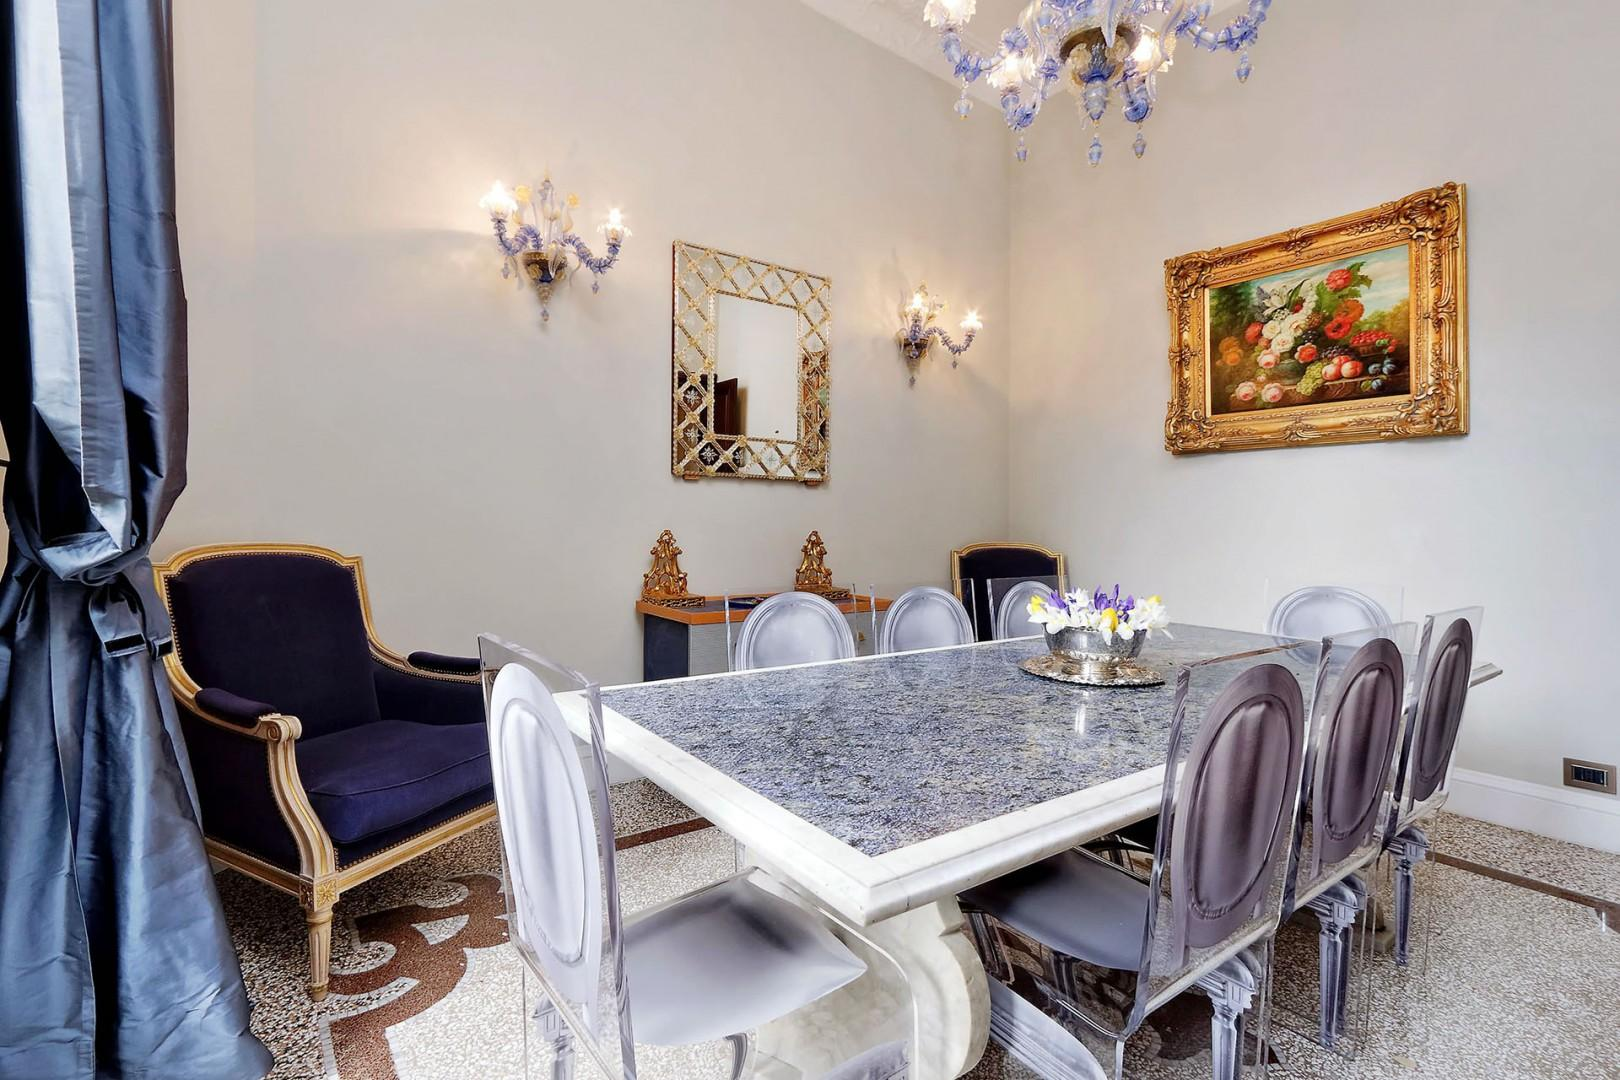 The table is made of striking deep blue marble and comfortably seats 8.